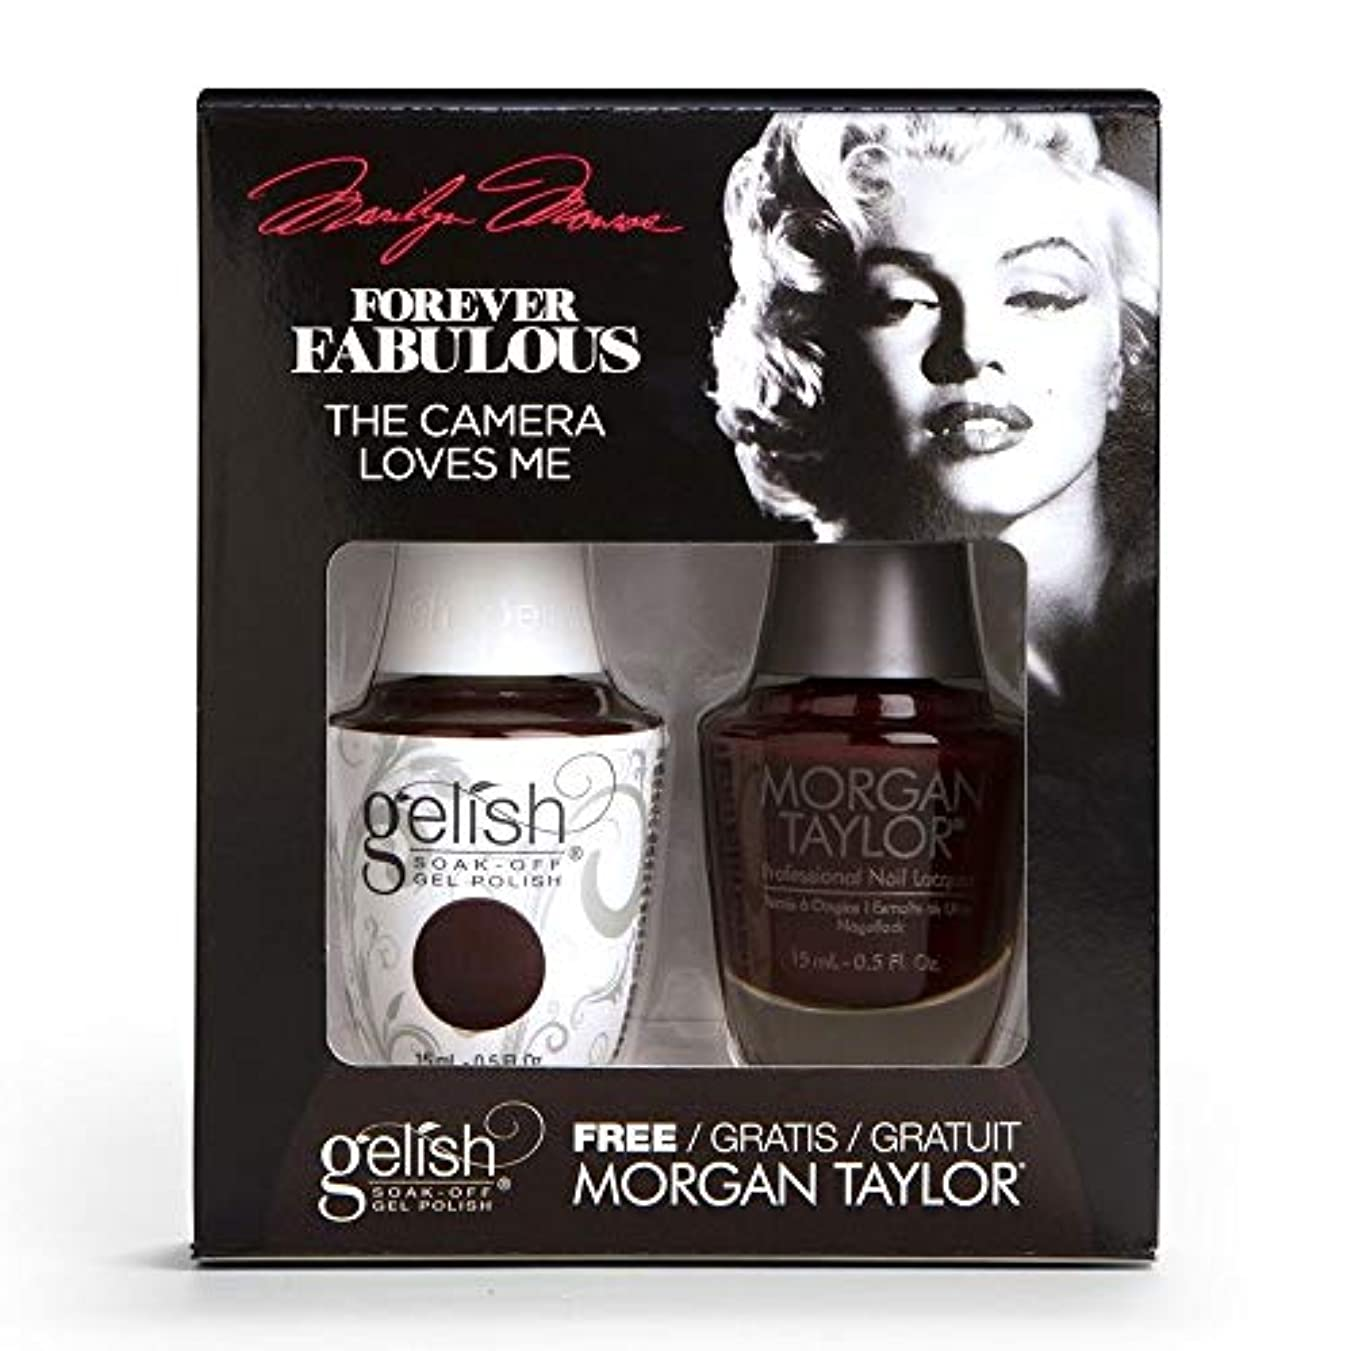 合唱団感情の透けて見えるHarmony Gelish & Morgan Taylor - Two Of A Kind - Forever Fabulous Marilyn Monroe - The Camera Loves Me 15 mL /...